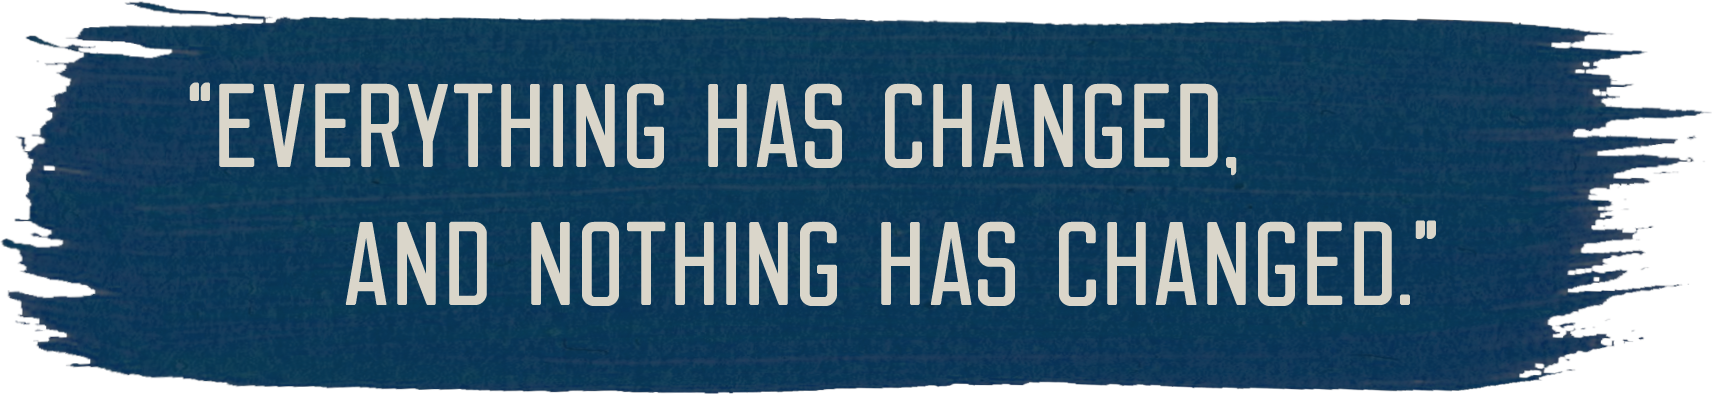 everything has changed quote.png